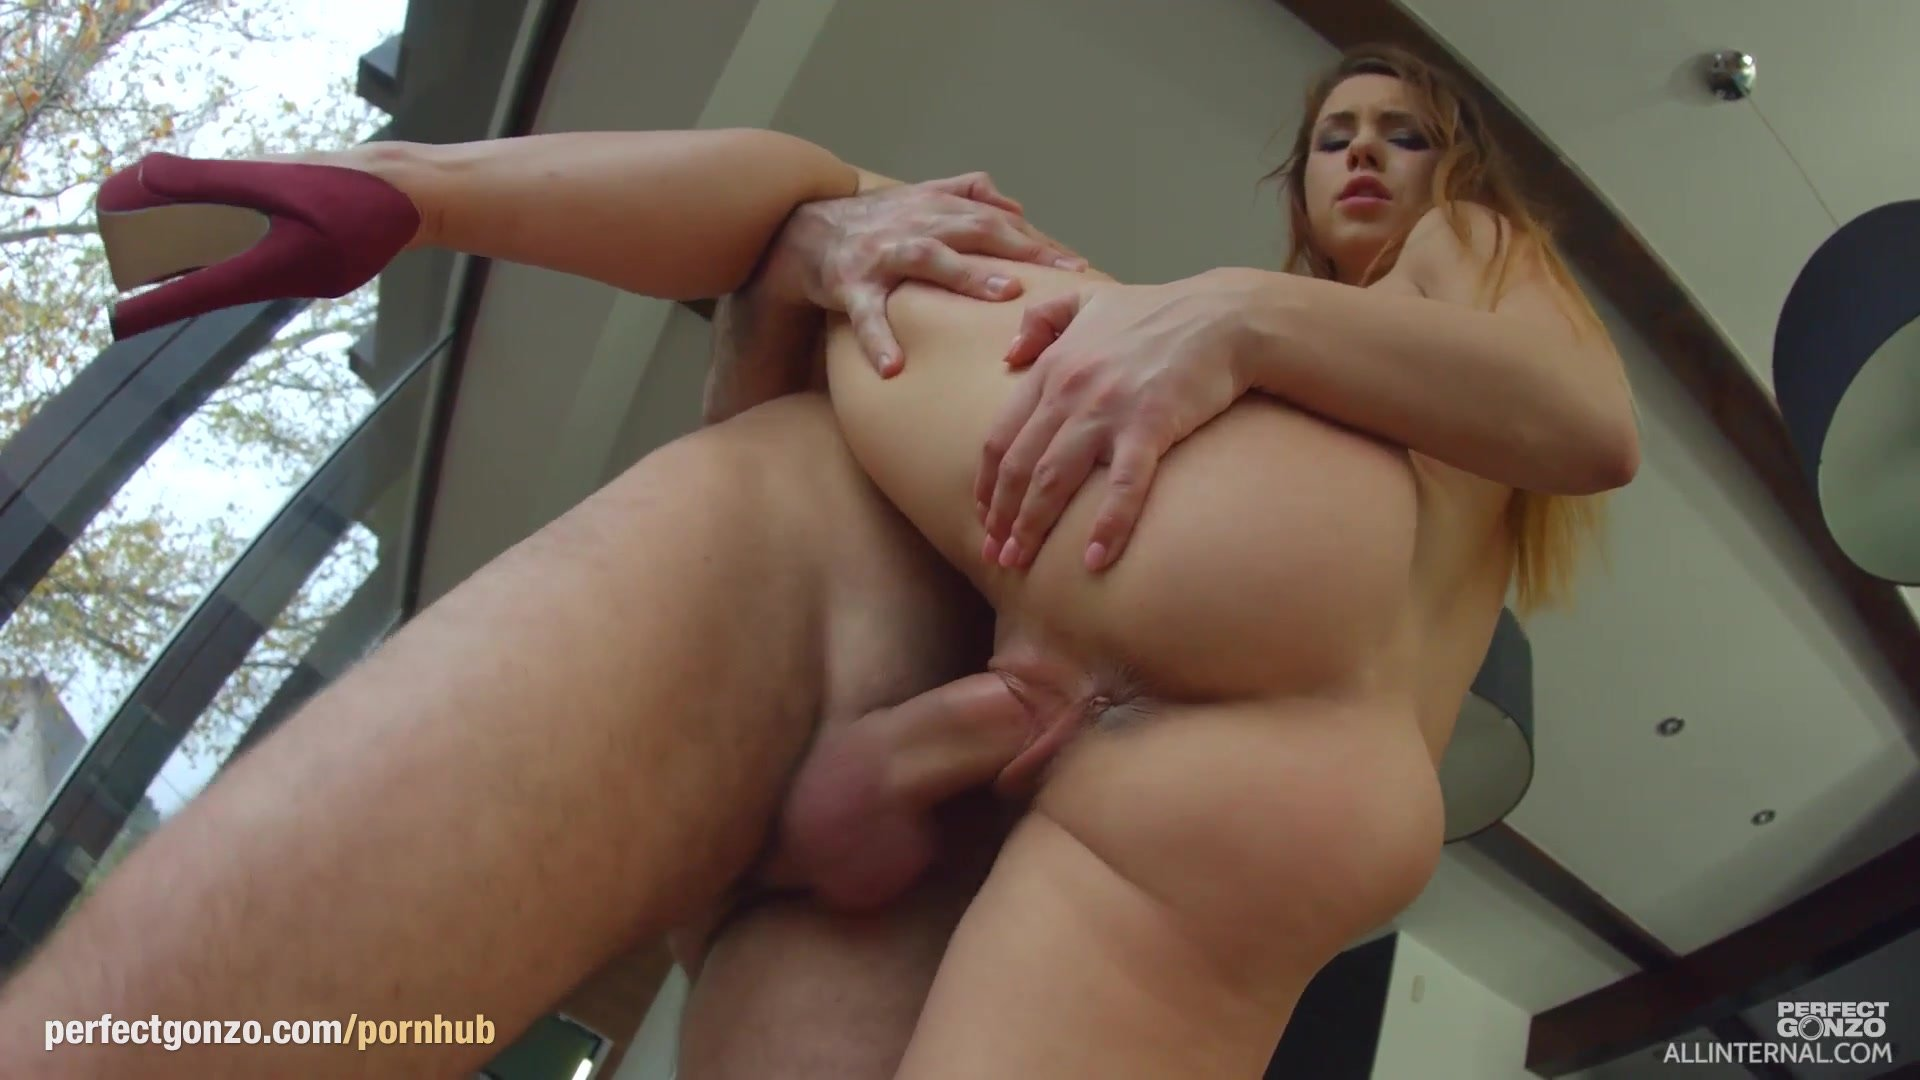 Taylor Sands gets a full load of hot jizz at All internal as a creampie